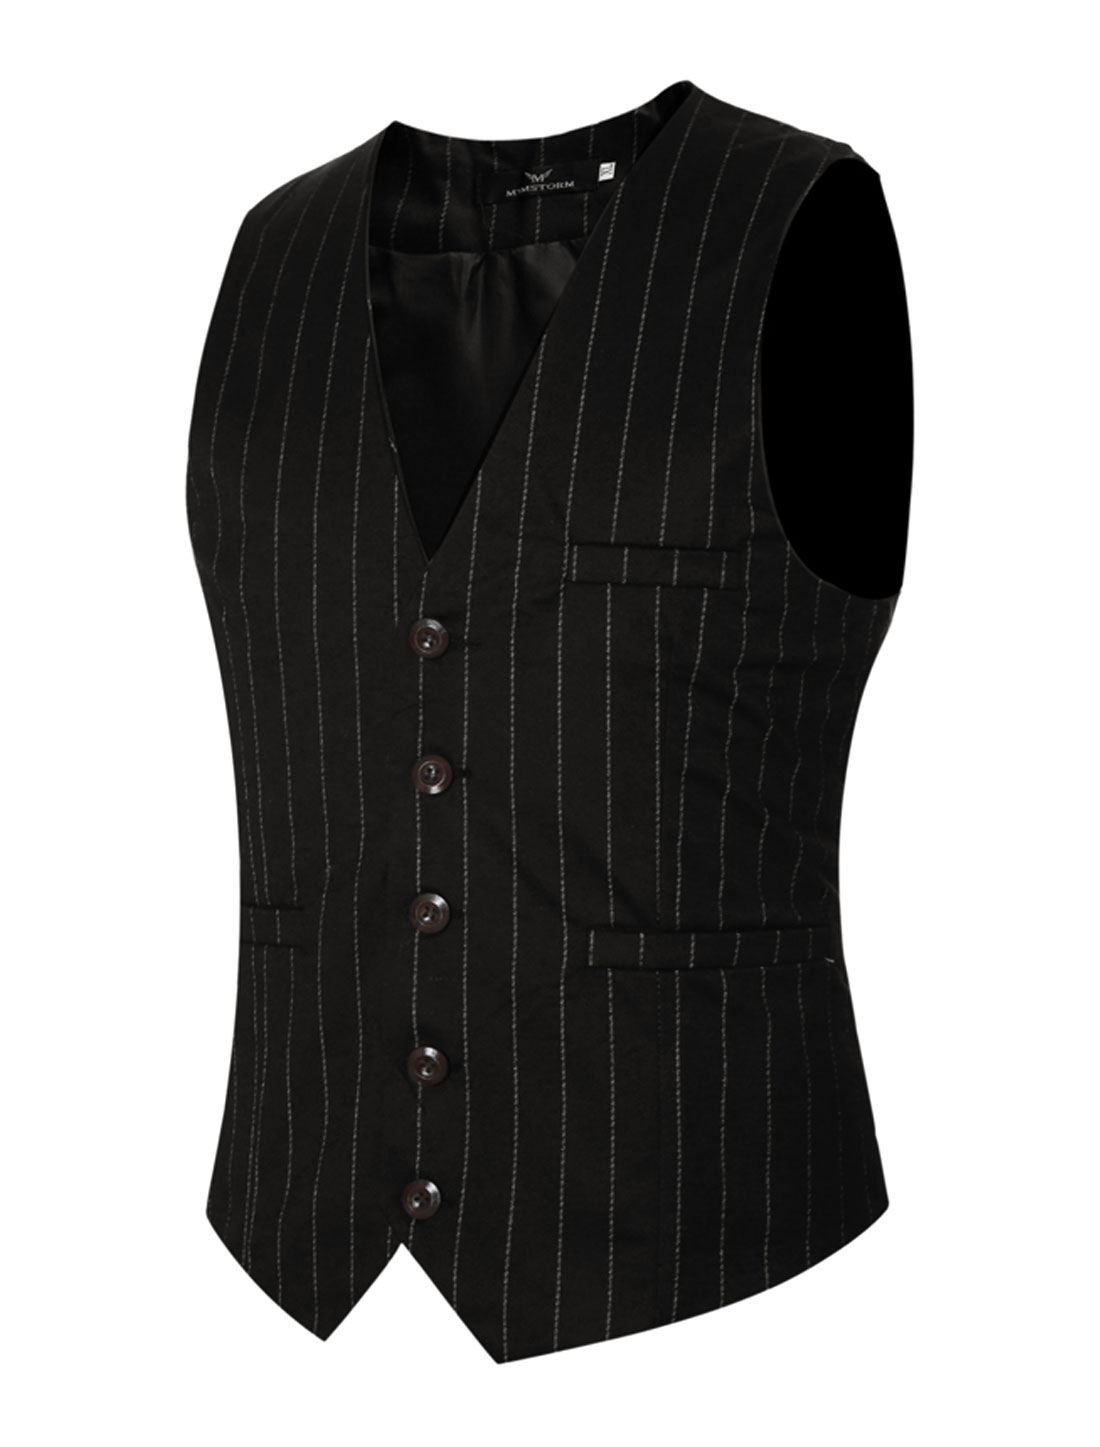 Men Adjustable Self Tie Slim Fit V Neck Button Up Striped Waistcoat Black M